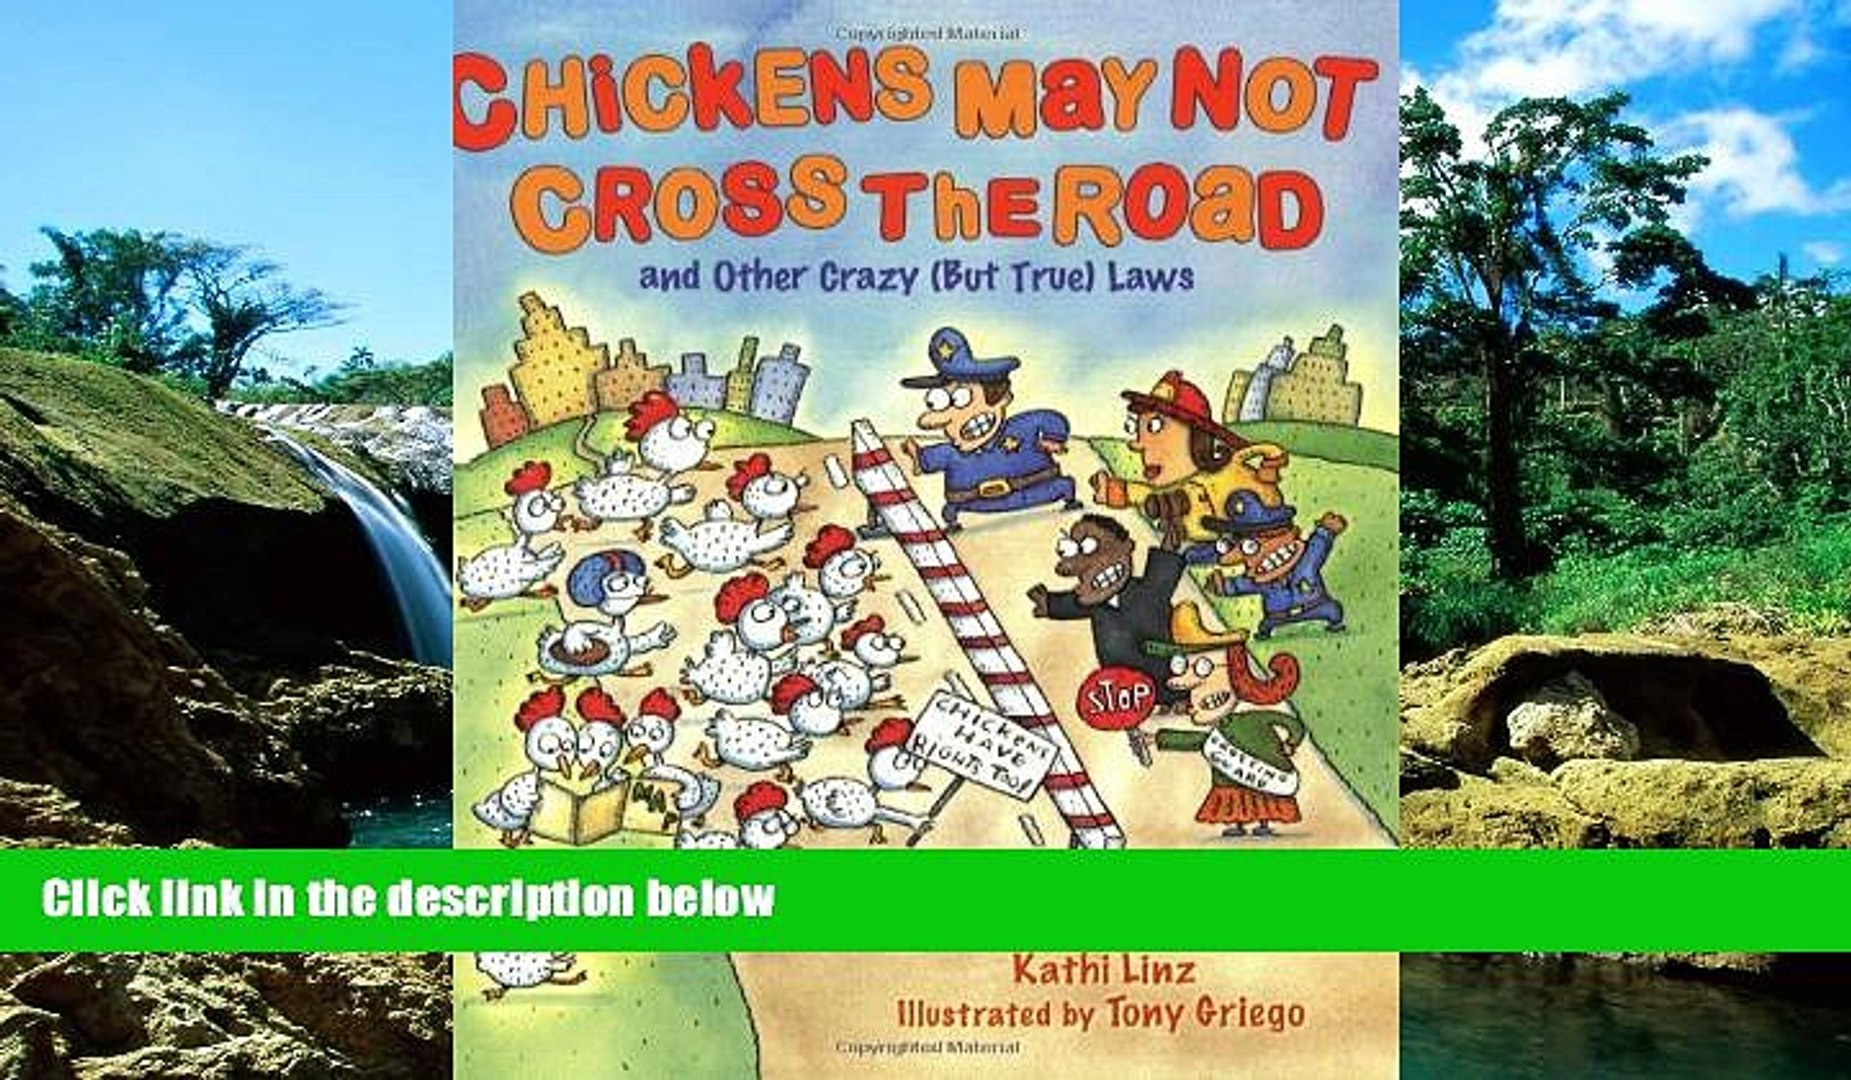 READ FULL  Chickens May Not Cross the Road and Other Crazy (But True) Laws: and Other Crazy But